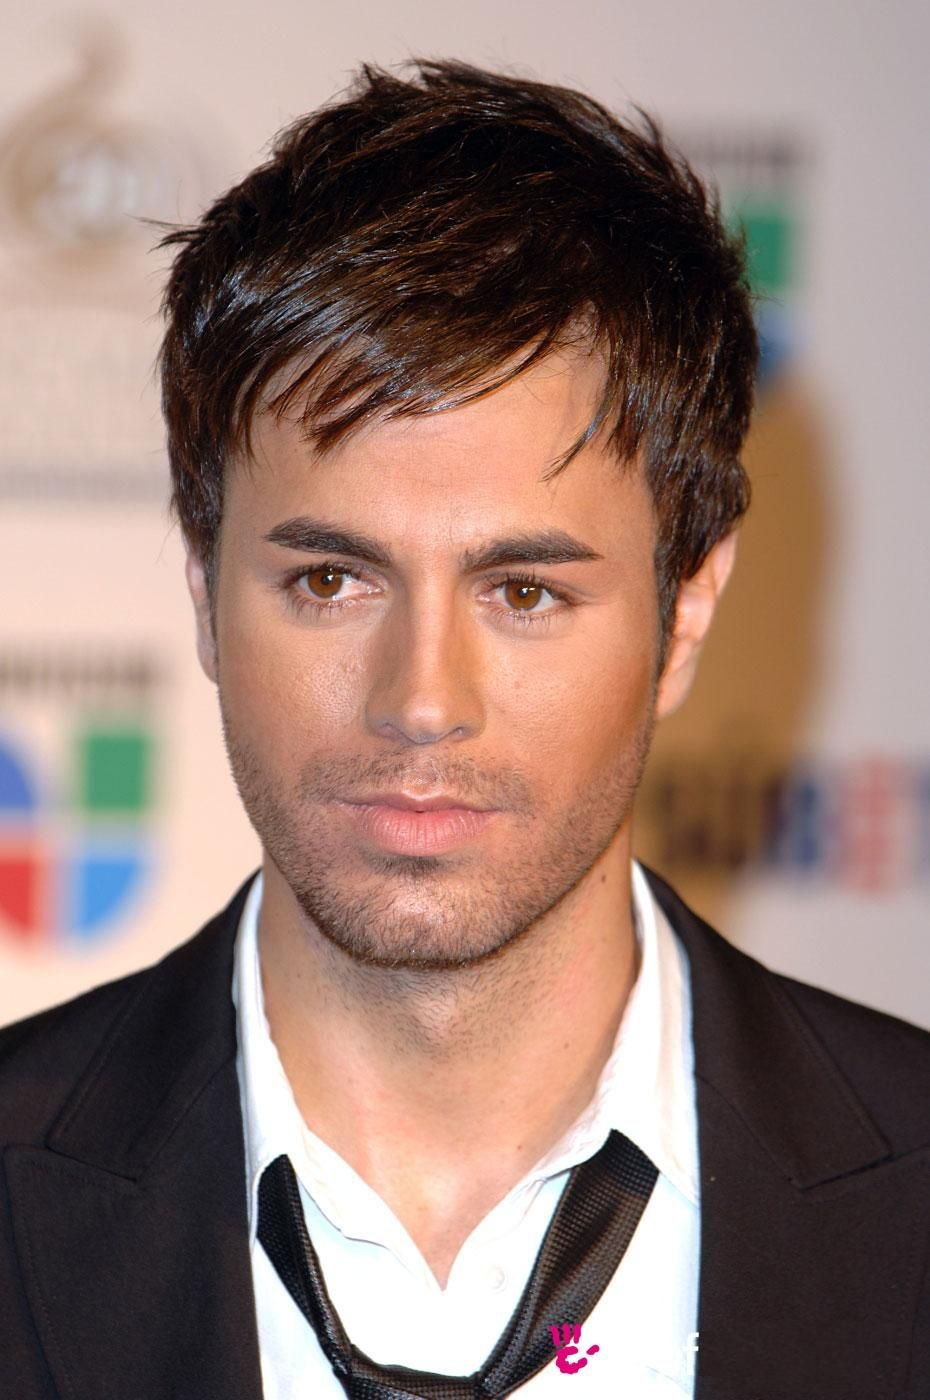 Enrique Iglesias Short Hair Styles 2011 Guys Fashion Trends 2013 Oval Face Hairstyles Oval Face Men Thick Hair Styles